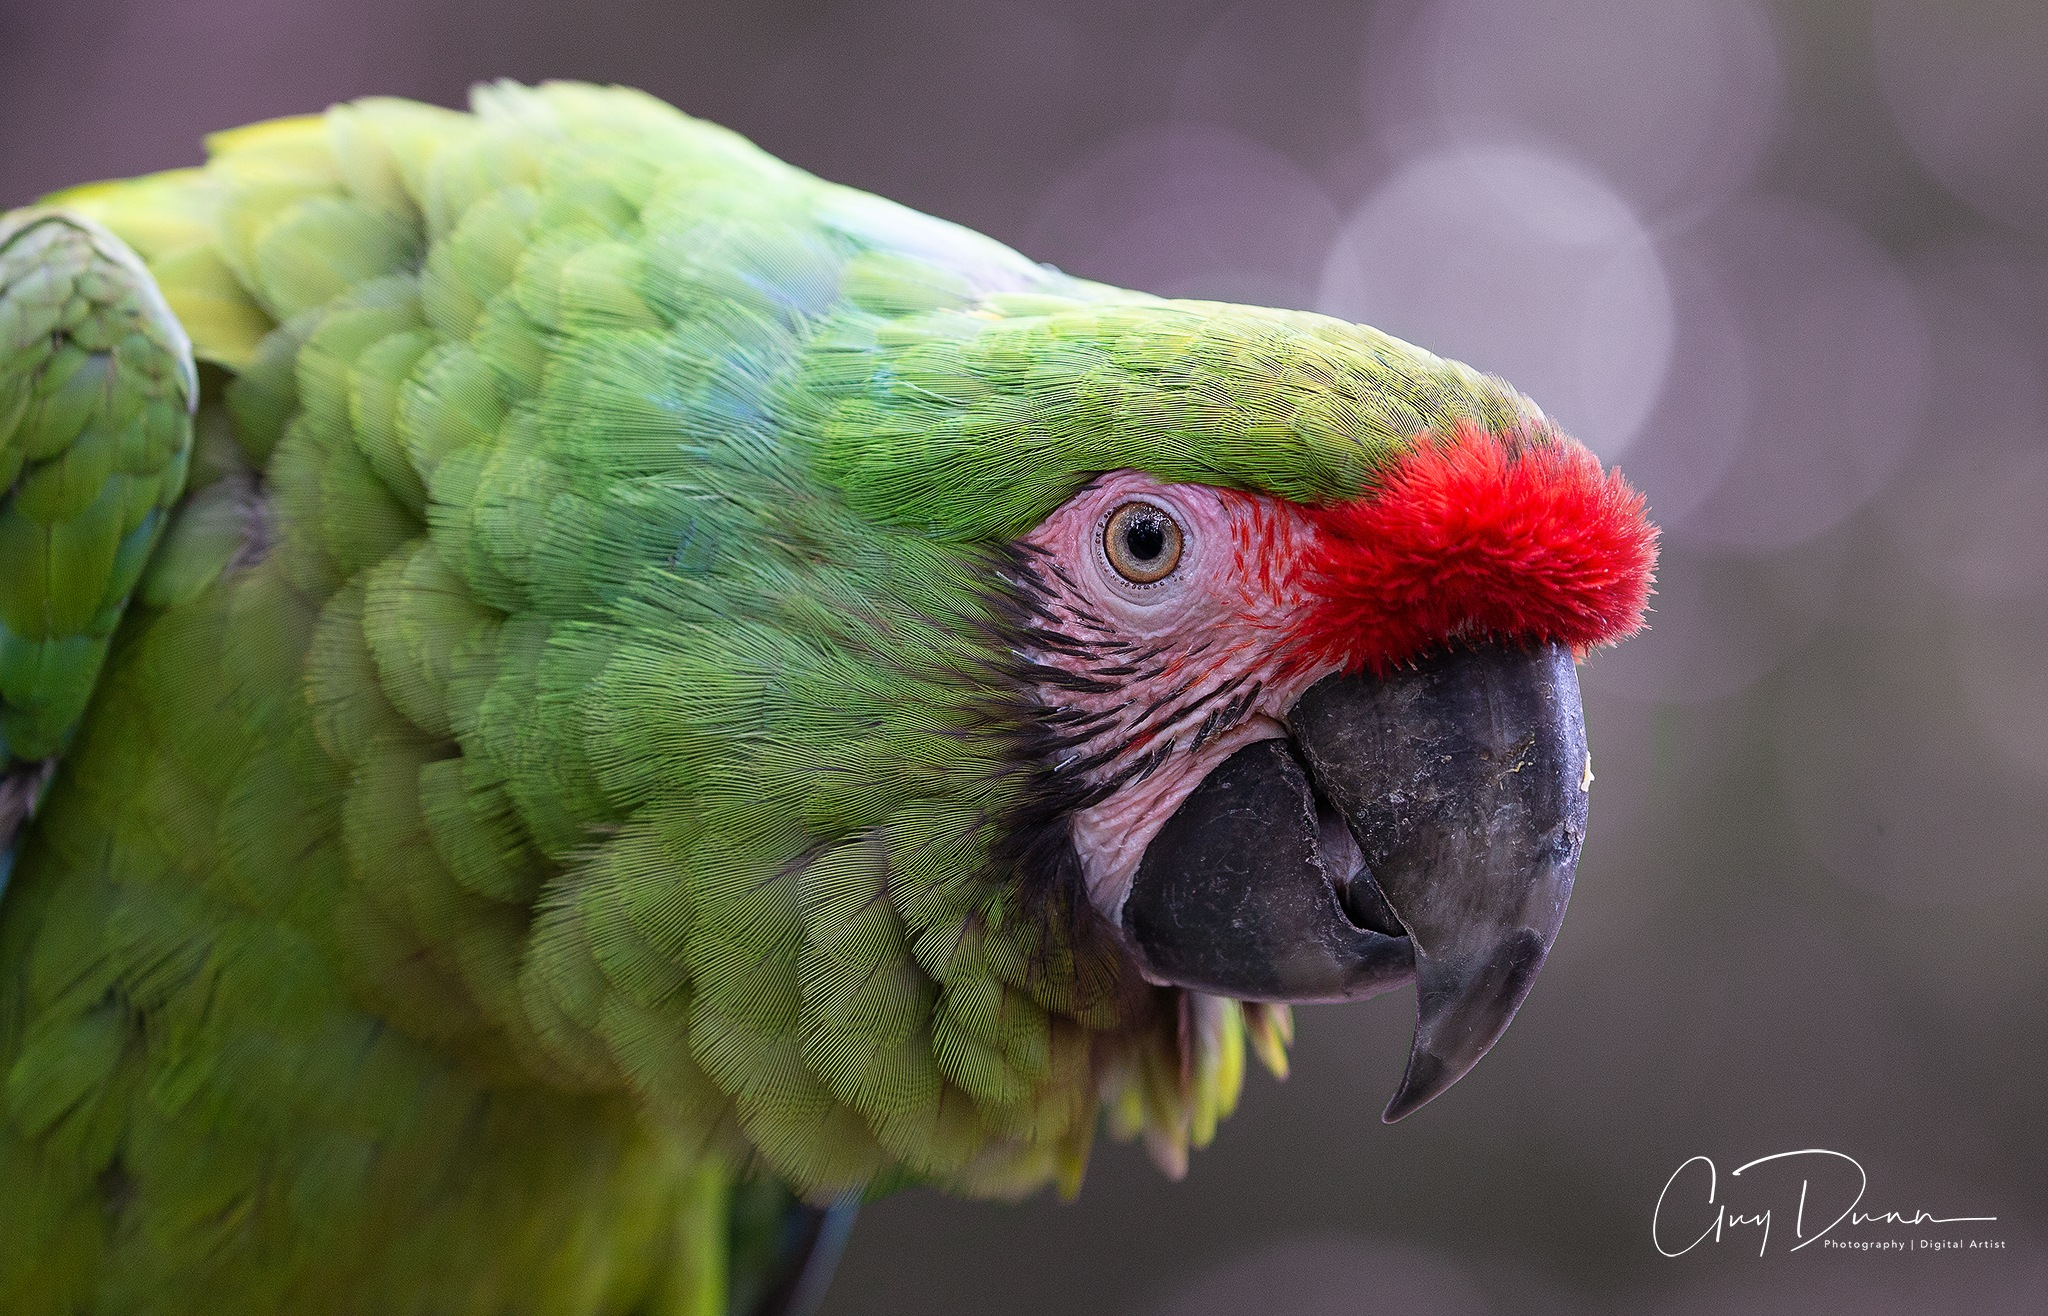 Great Green Macaw by Guy Dunn